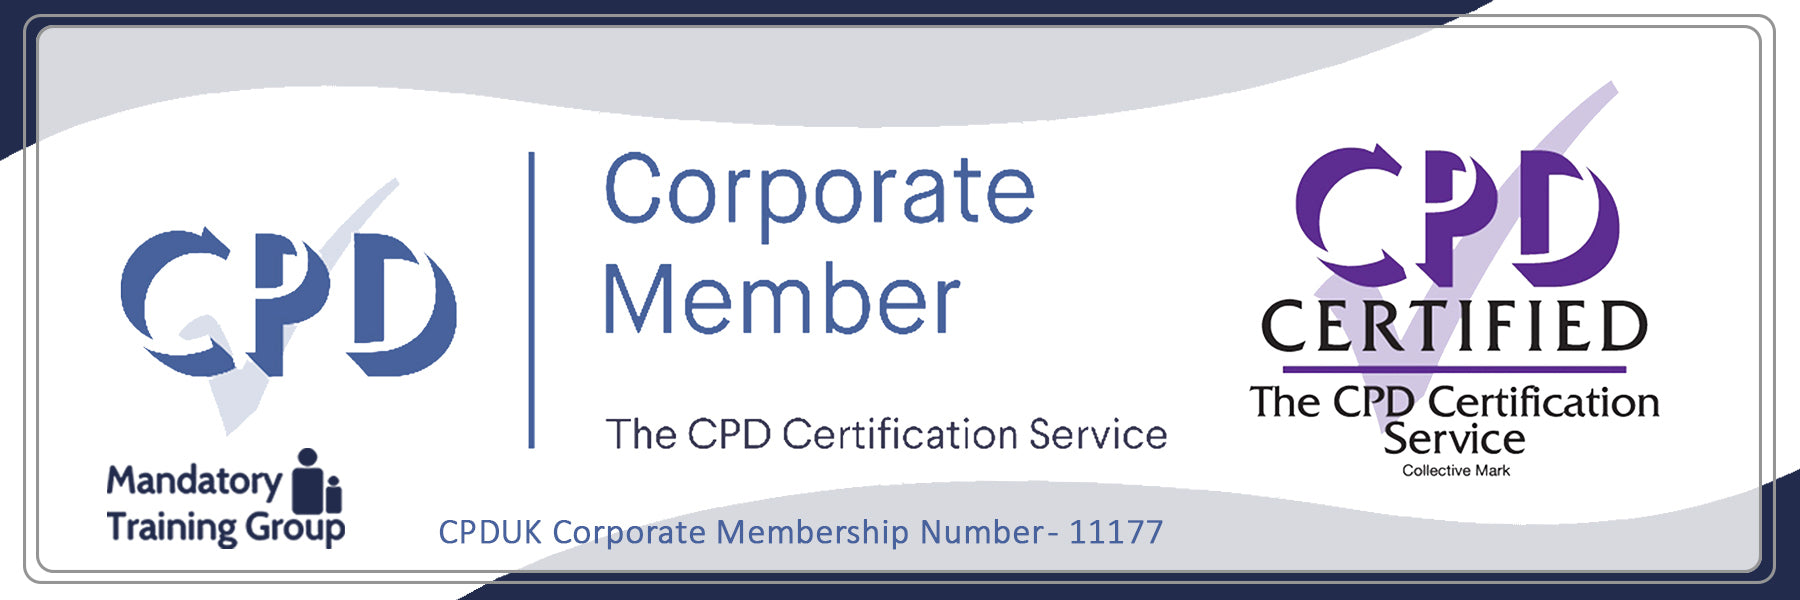 Courier Services Training Package - The Mandatory Training Group UK -